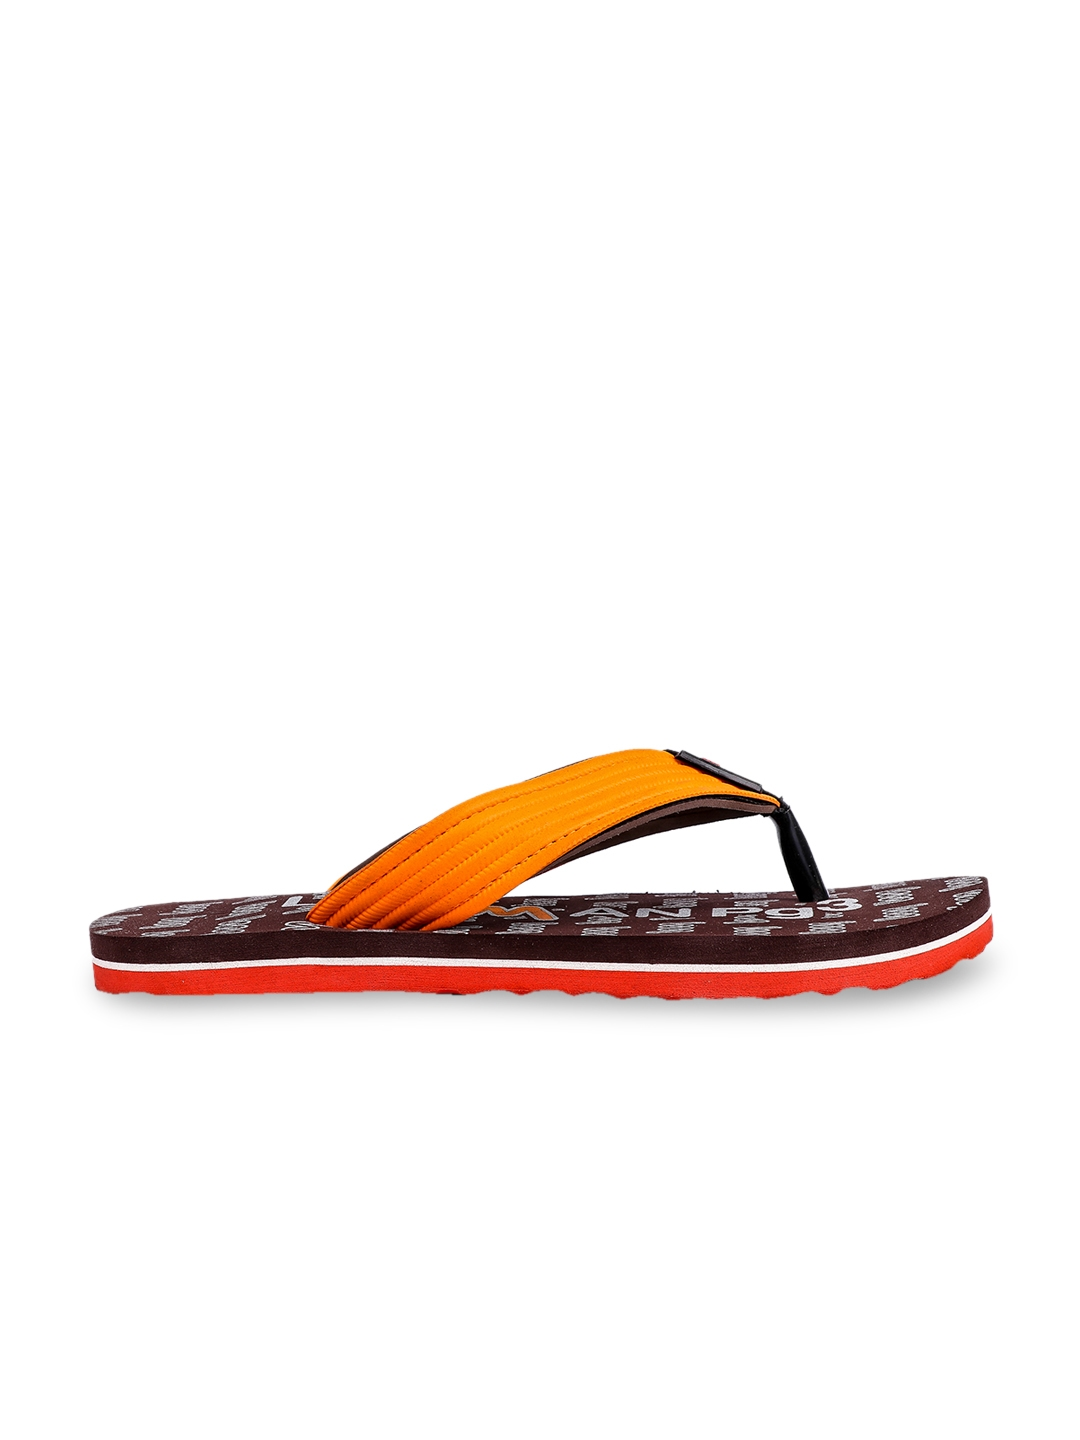 73203d110538 Buy Lawman Pg3 Men Brown   Orange Printed Thong Flip Flops - Flip ...